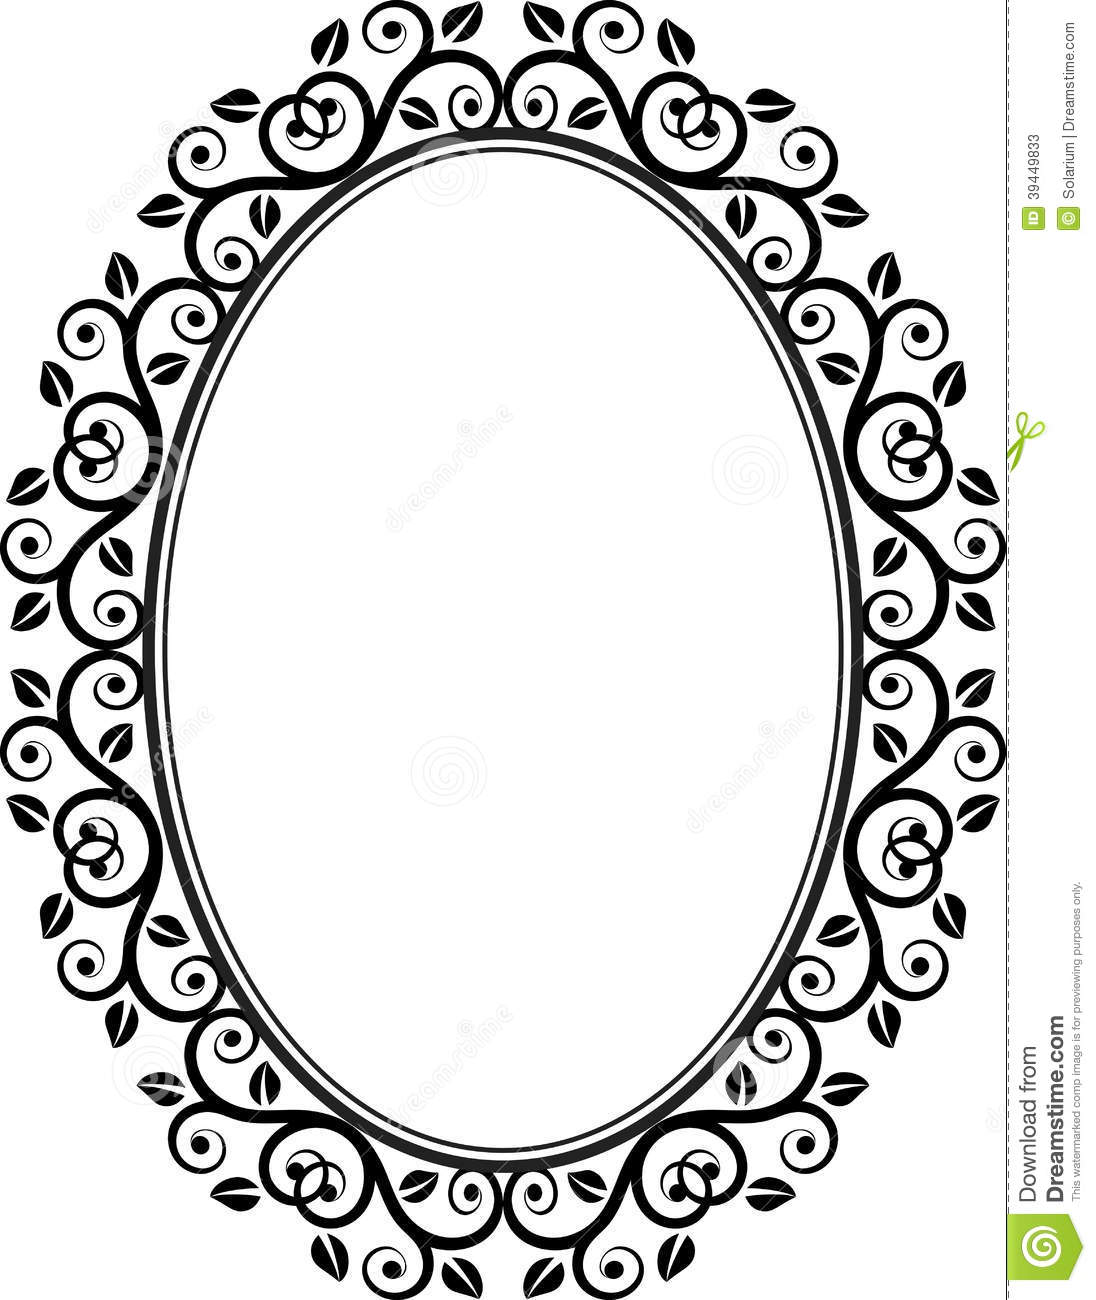 1096x1300 Oval Black Picture Frame Images